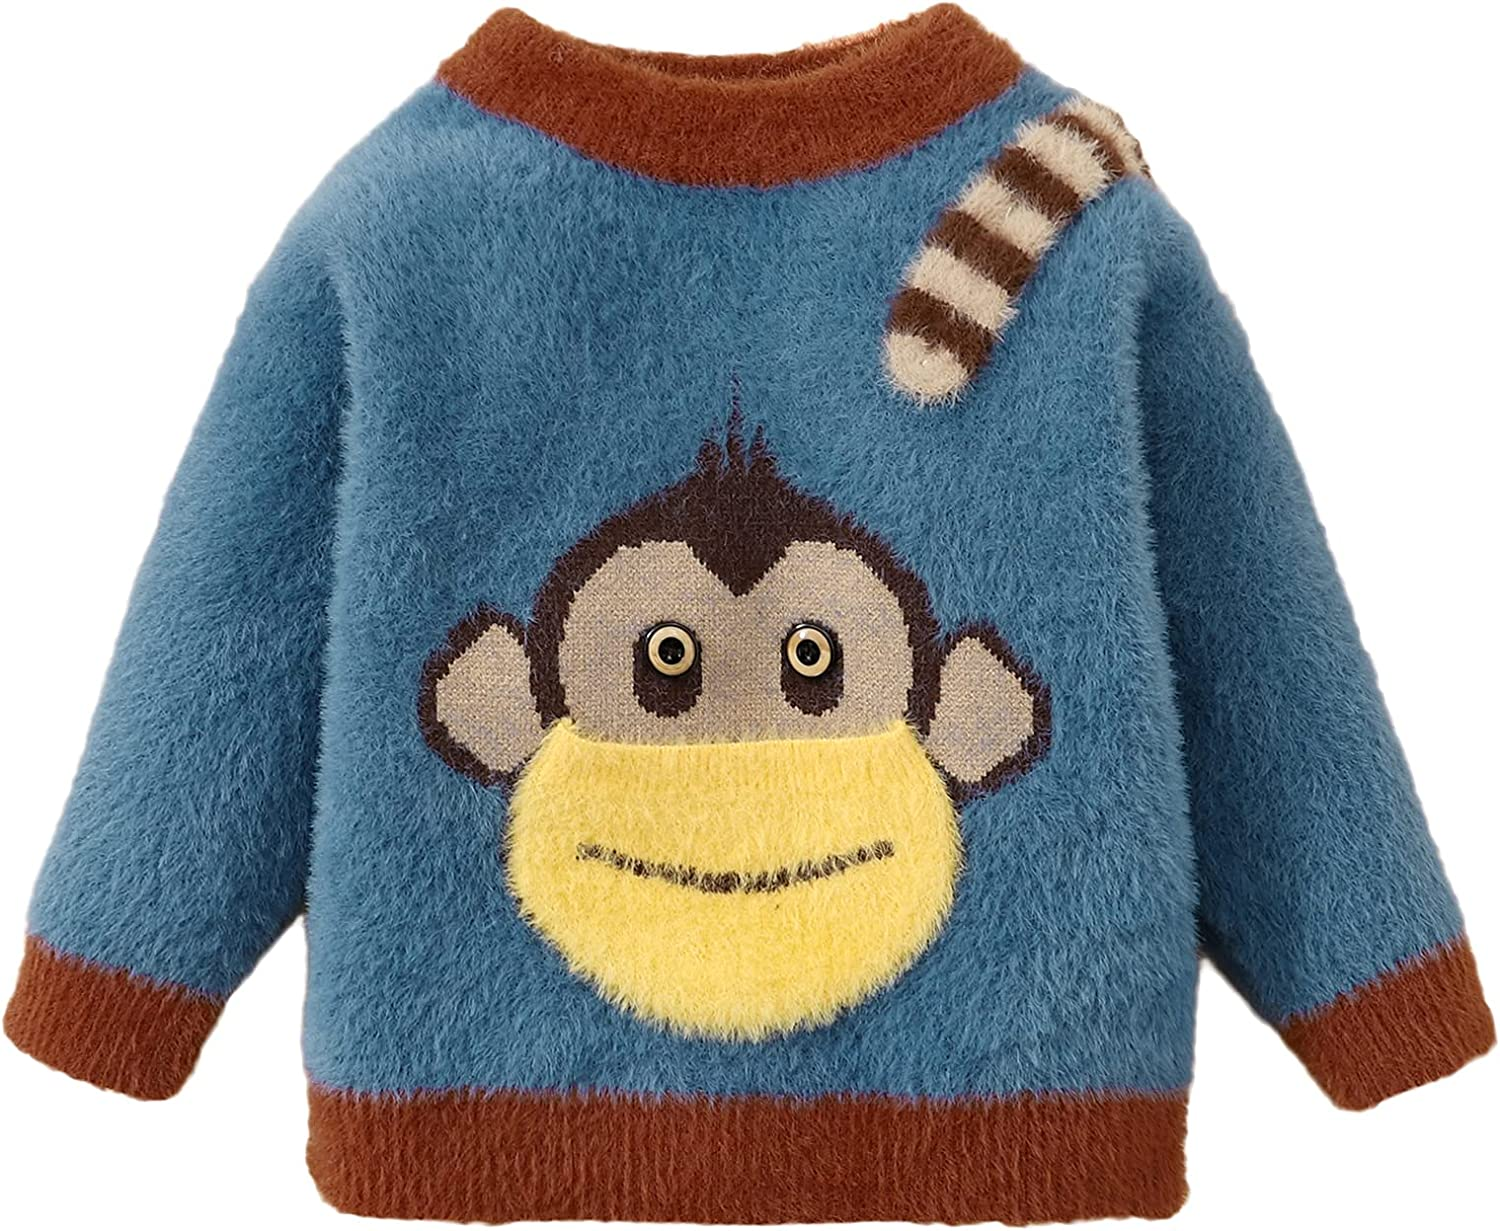 Toddler Baby Cartoon Sweater Pullover Fleece Top with Pocket Monkey 9-24M,2-3T